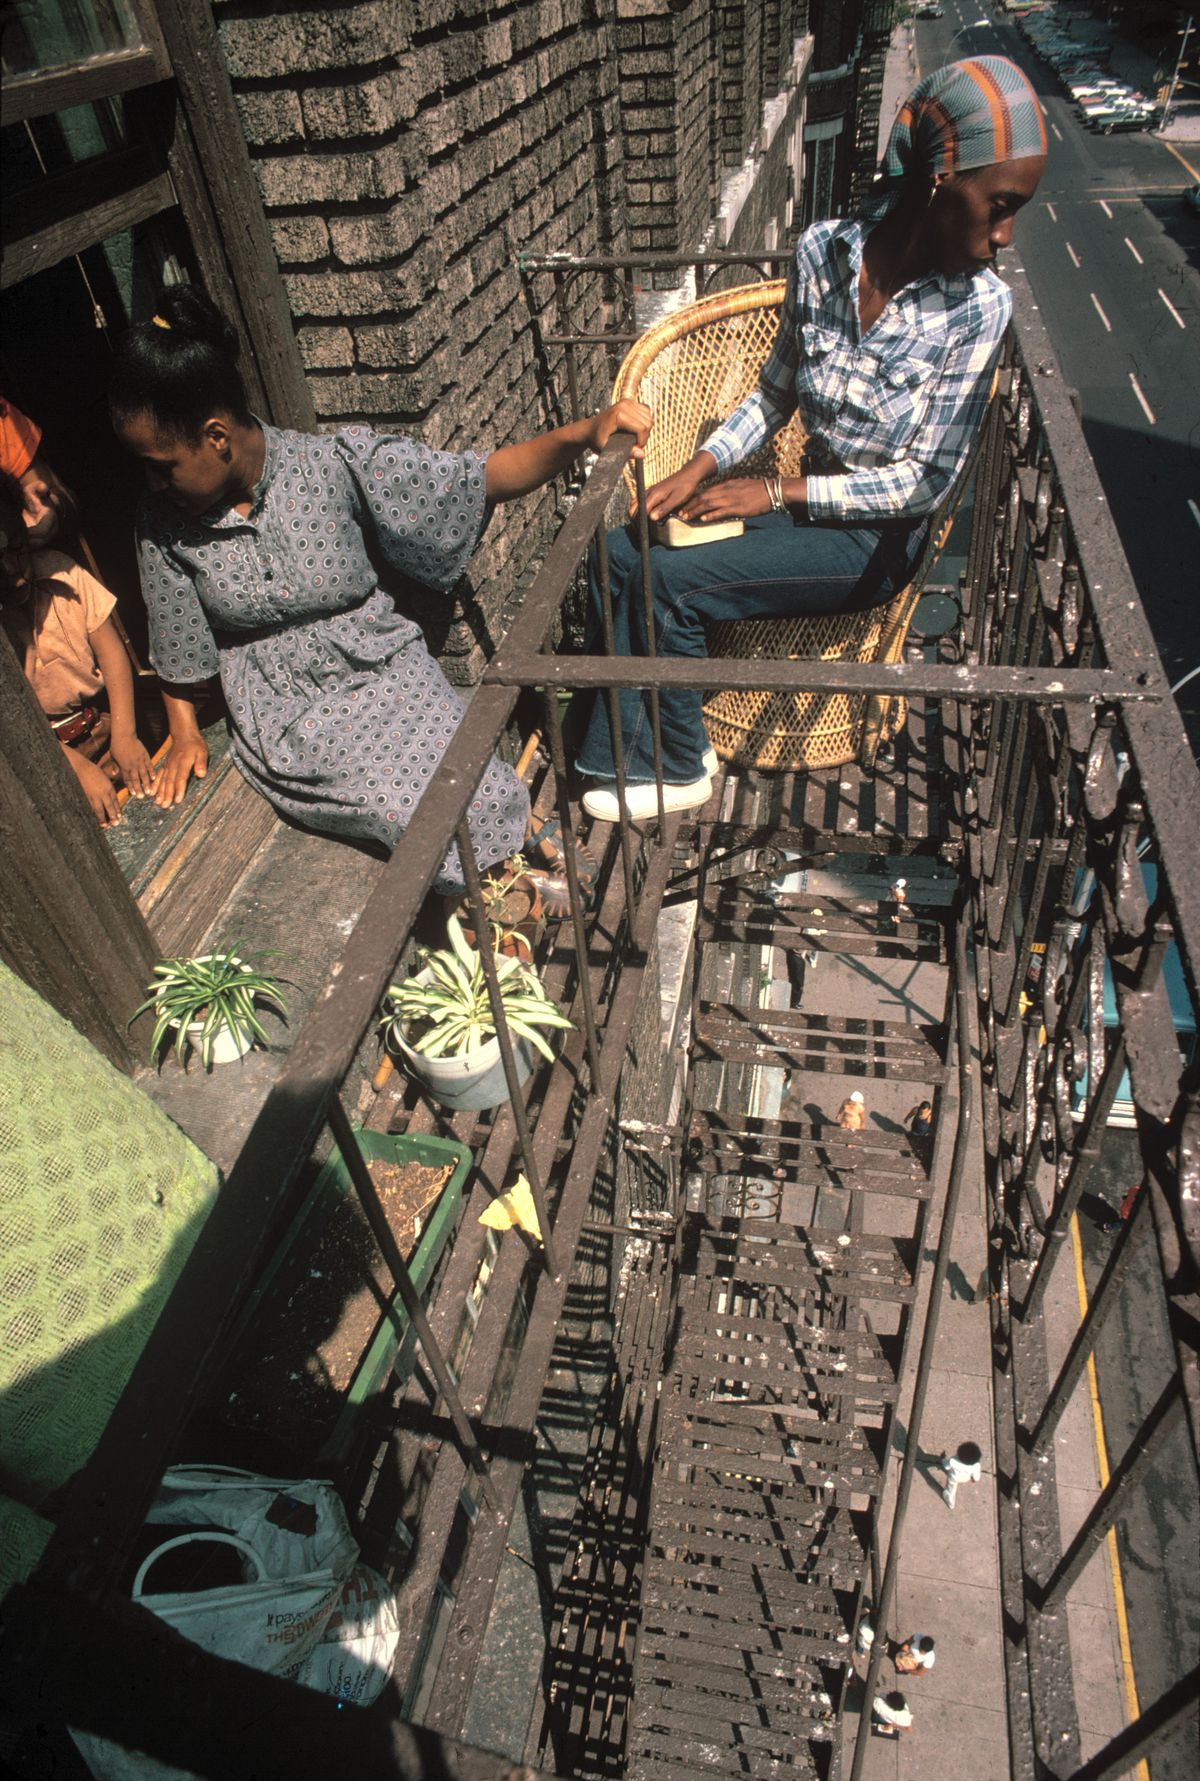 Fire escape in Harlem